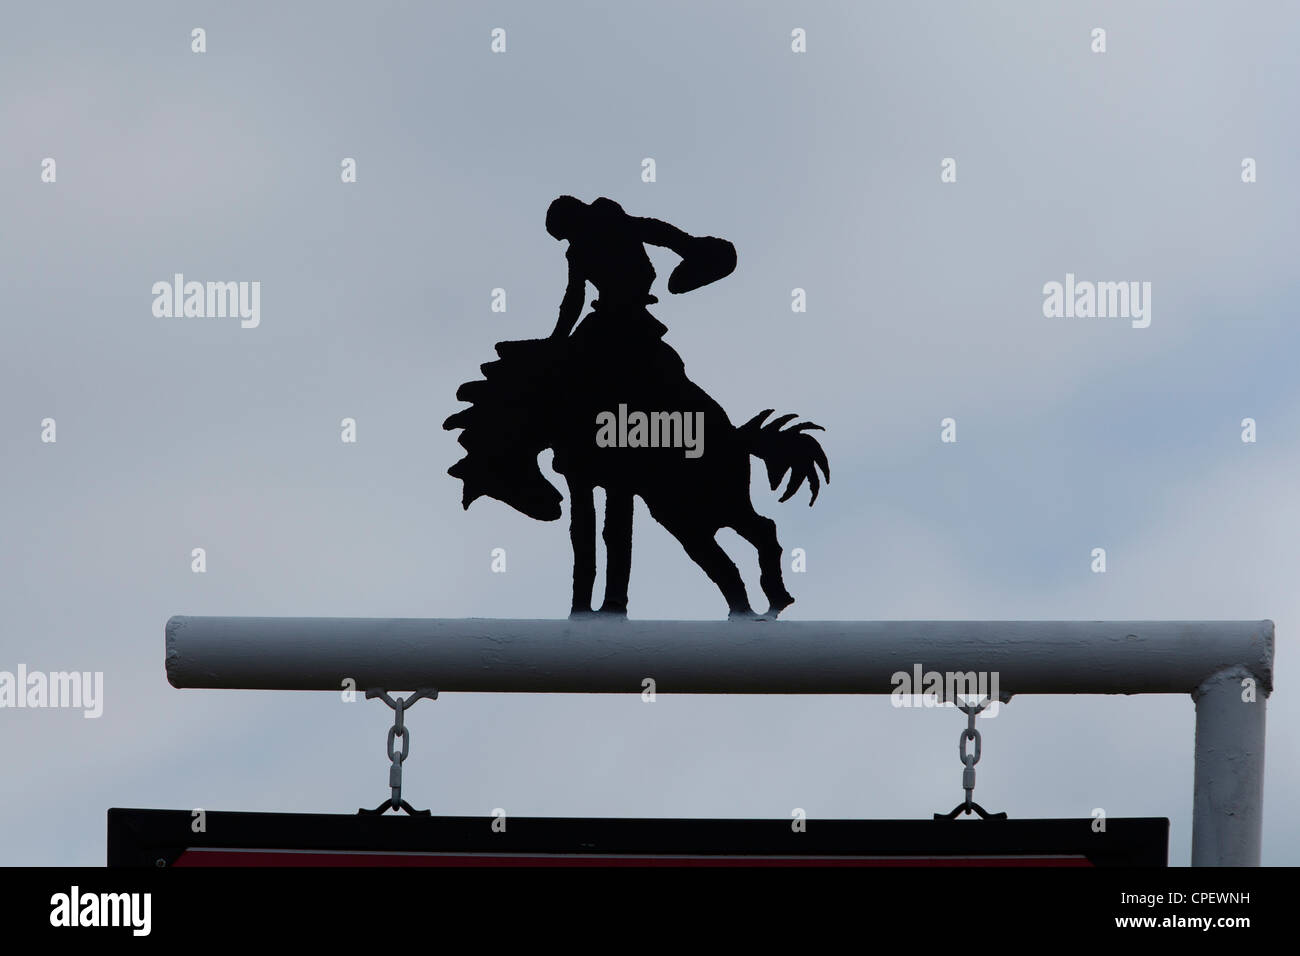 A silhouette cutout of a cowboy riding a bucking horse - Stock Image